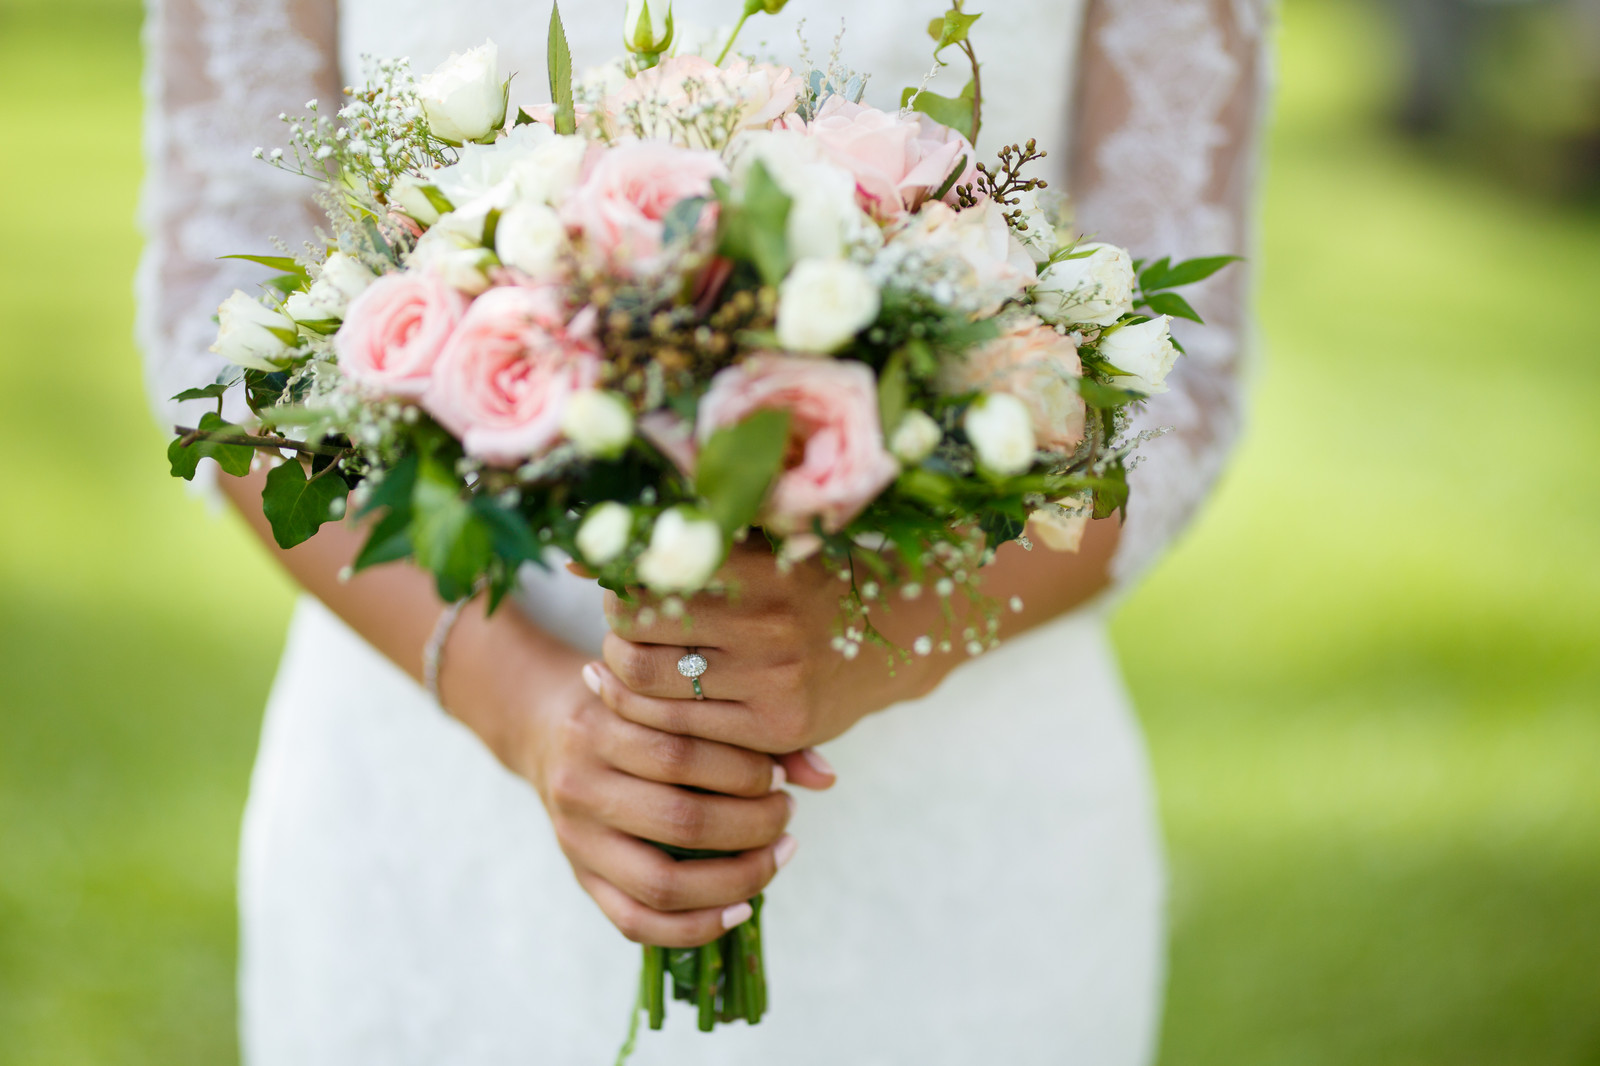 Destination weddings in sri lanka gallery of weddings romantic bridal bouquet of blush roses and white wild roses bridal bouquet at sri lanka izmirmasajfo Image collections